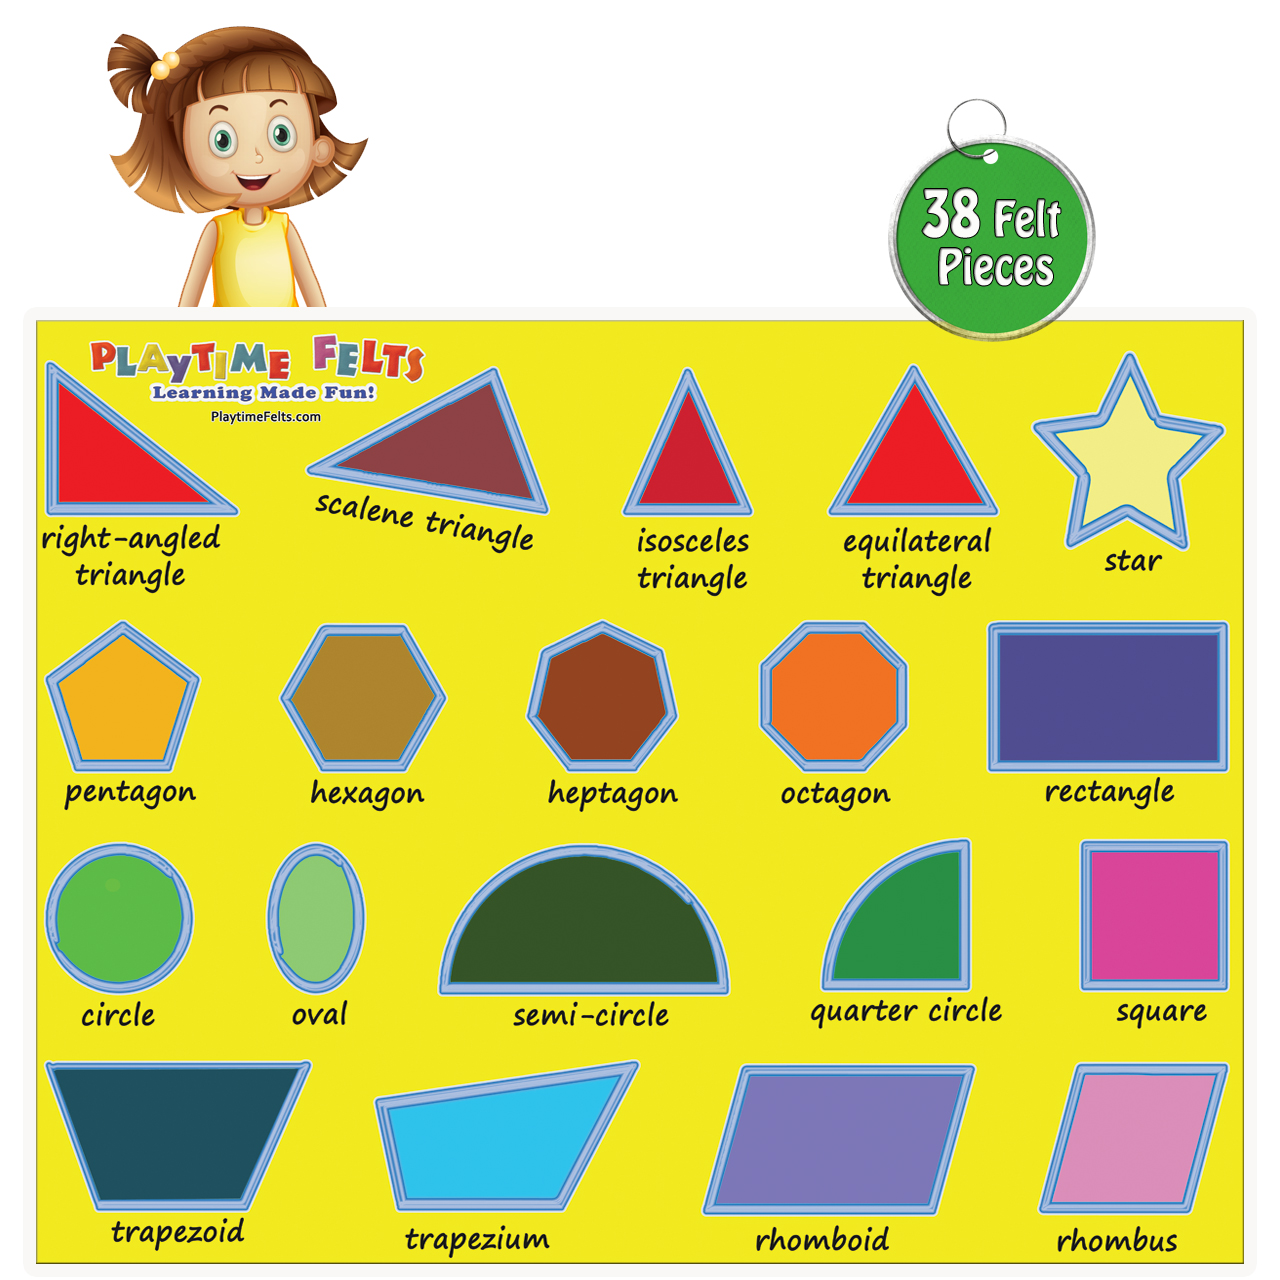 worksheet Shapes Names shapes and names worksheets newsofthewired thousands of with laptuoso laptuoso